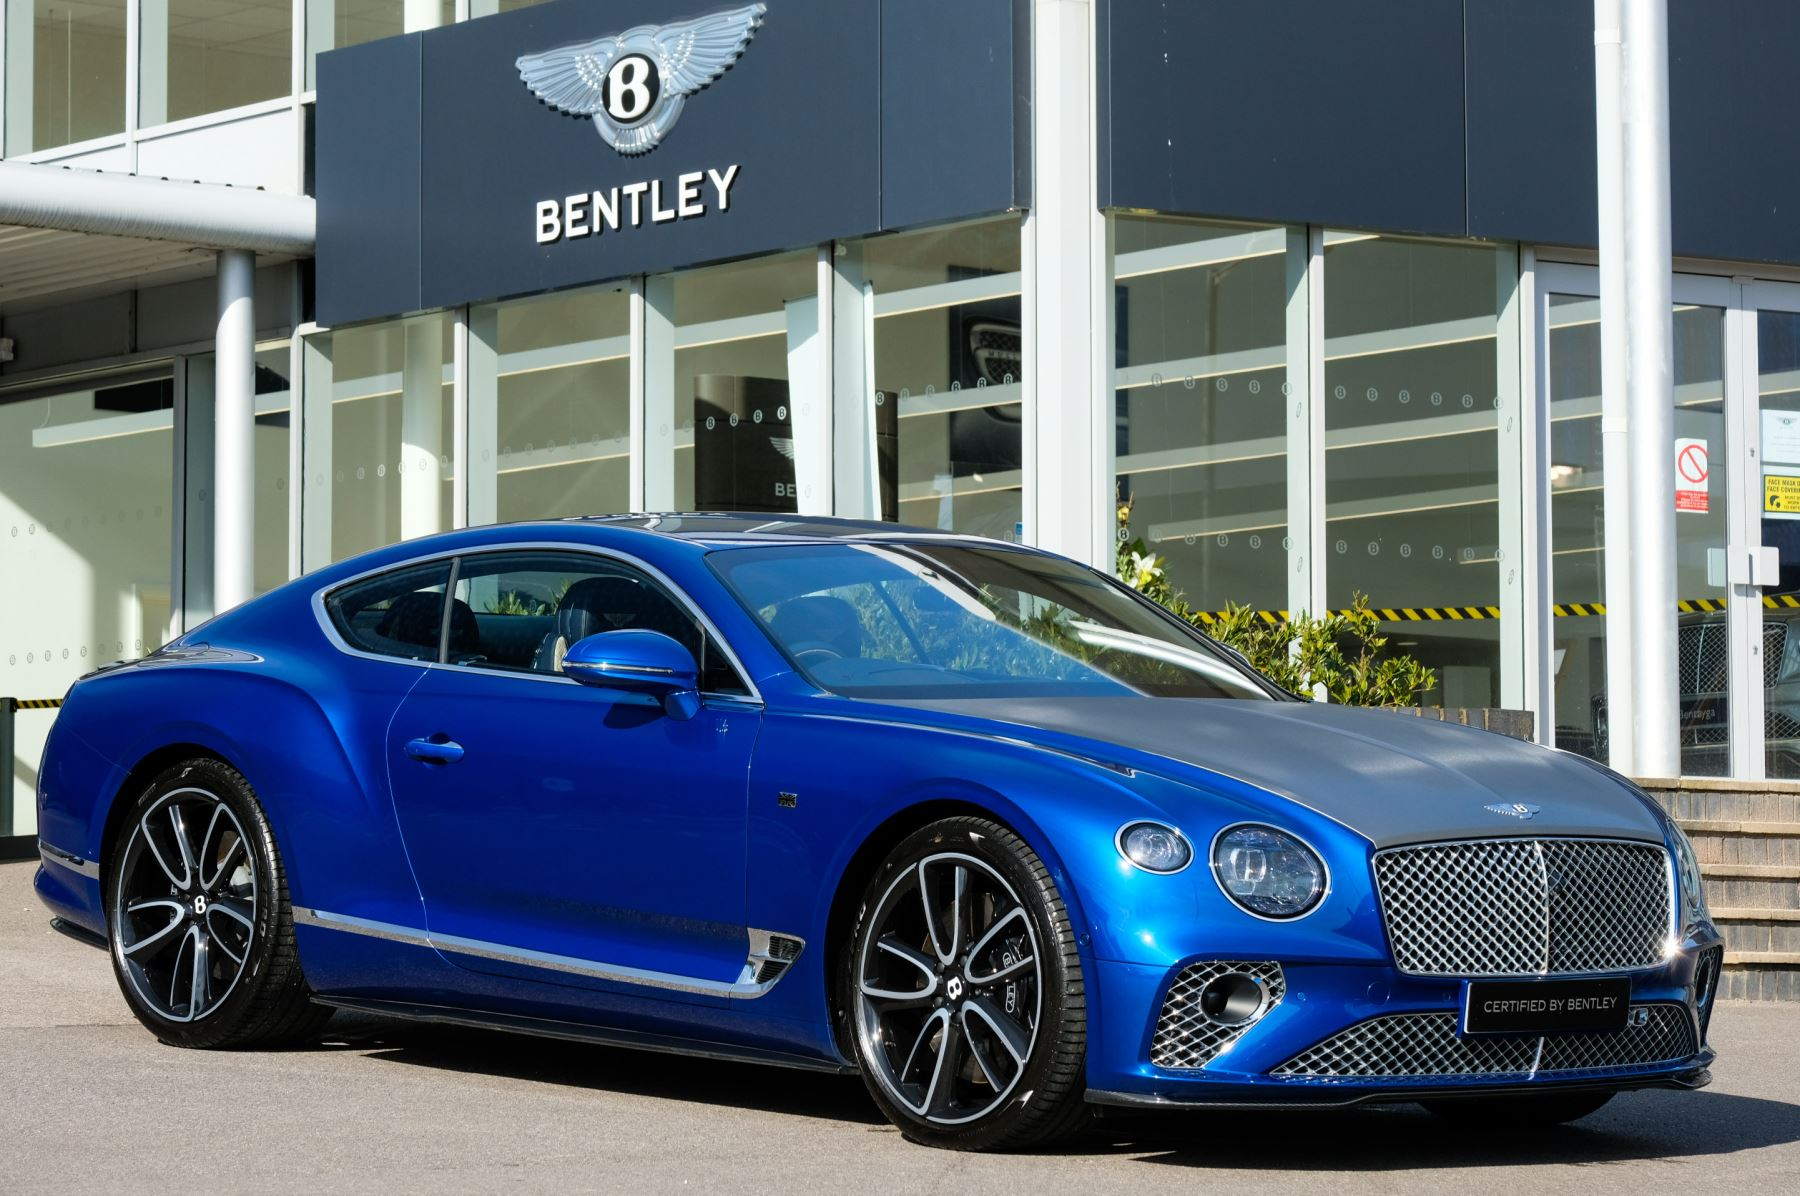 Bentley Continental GT 6.0 W12 - First Edition Specification Automatic 2 door Coupe (2018)